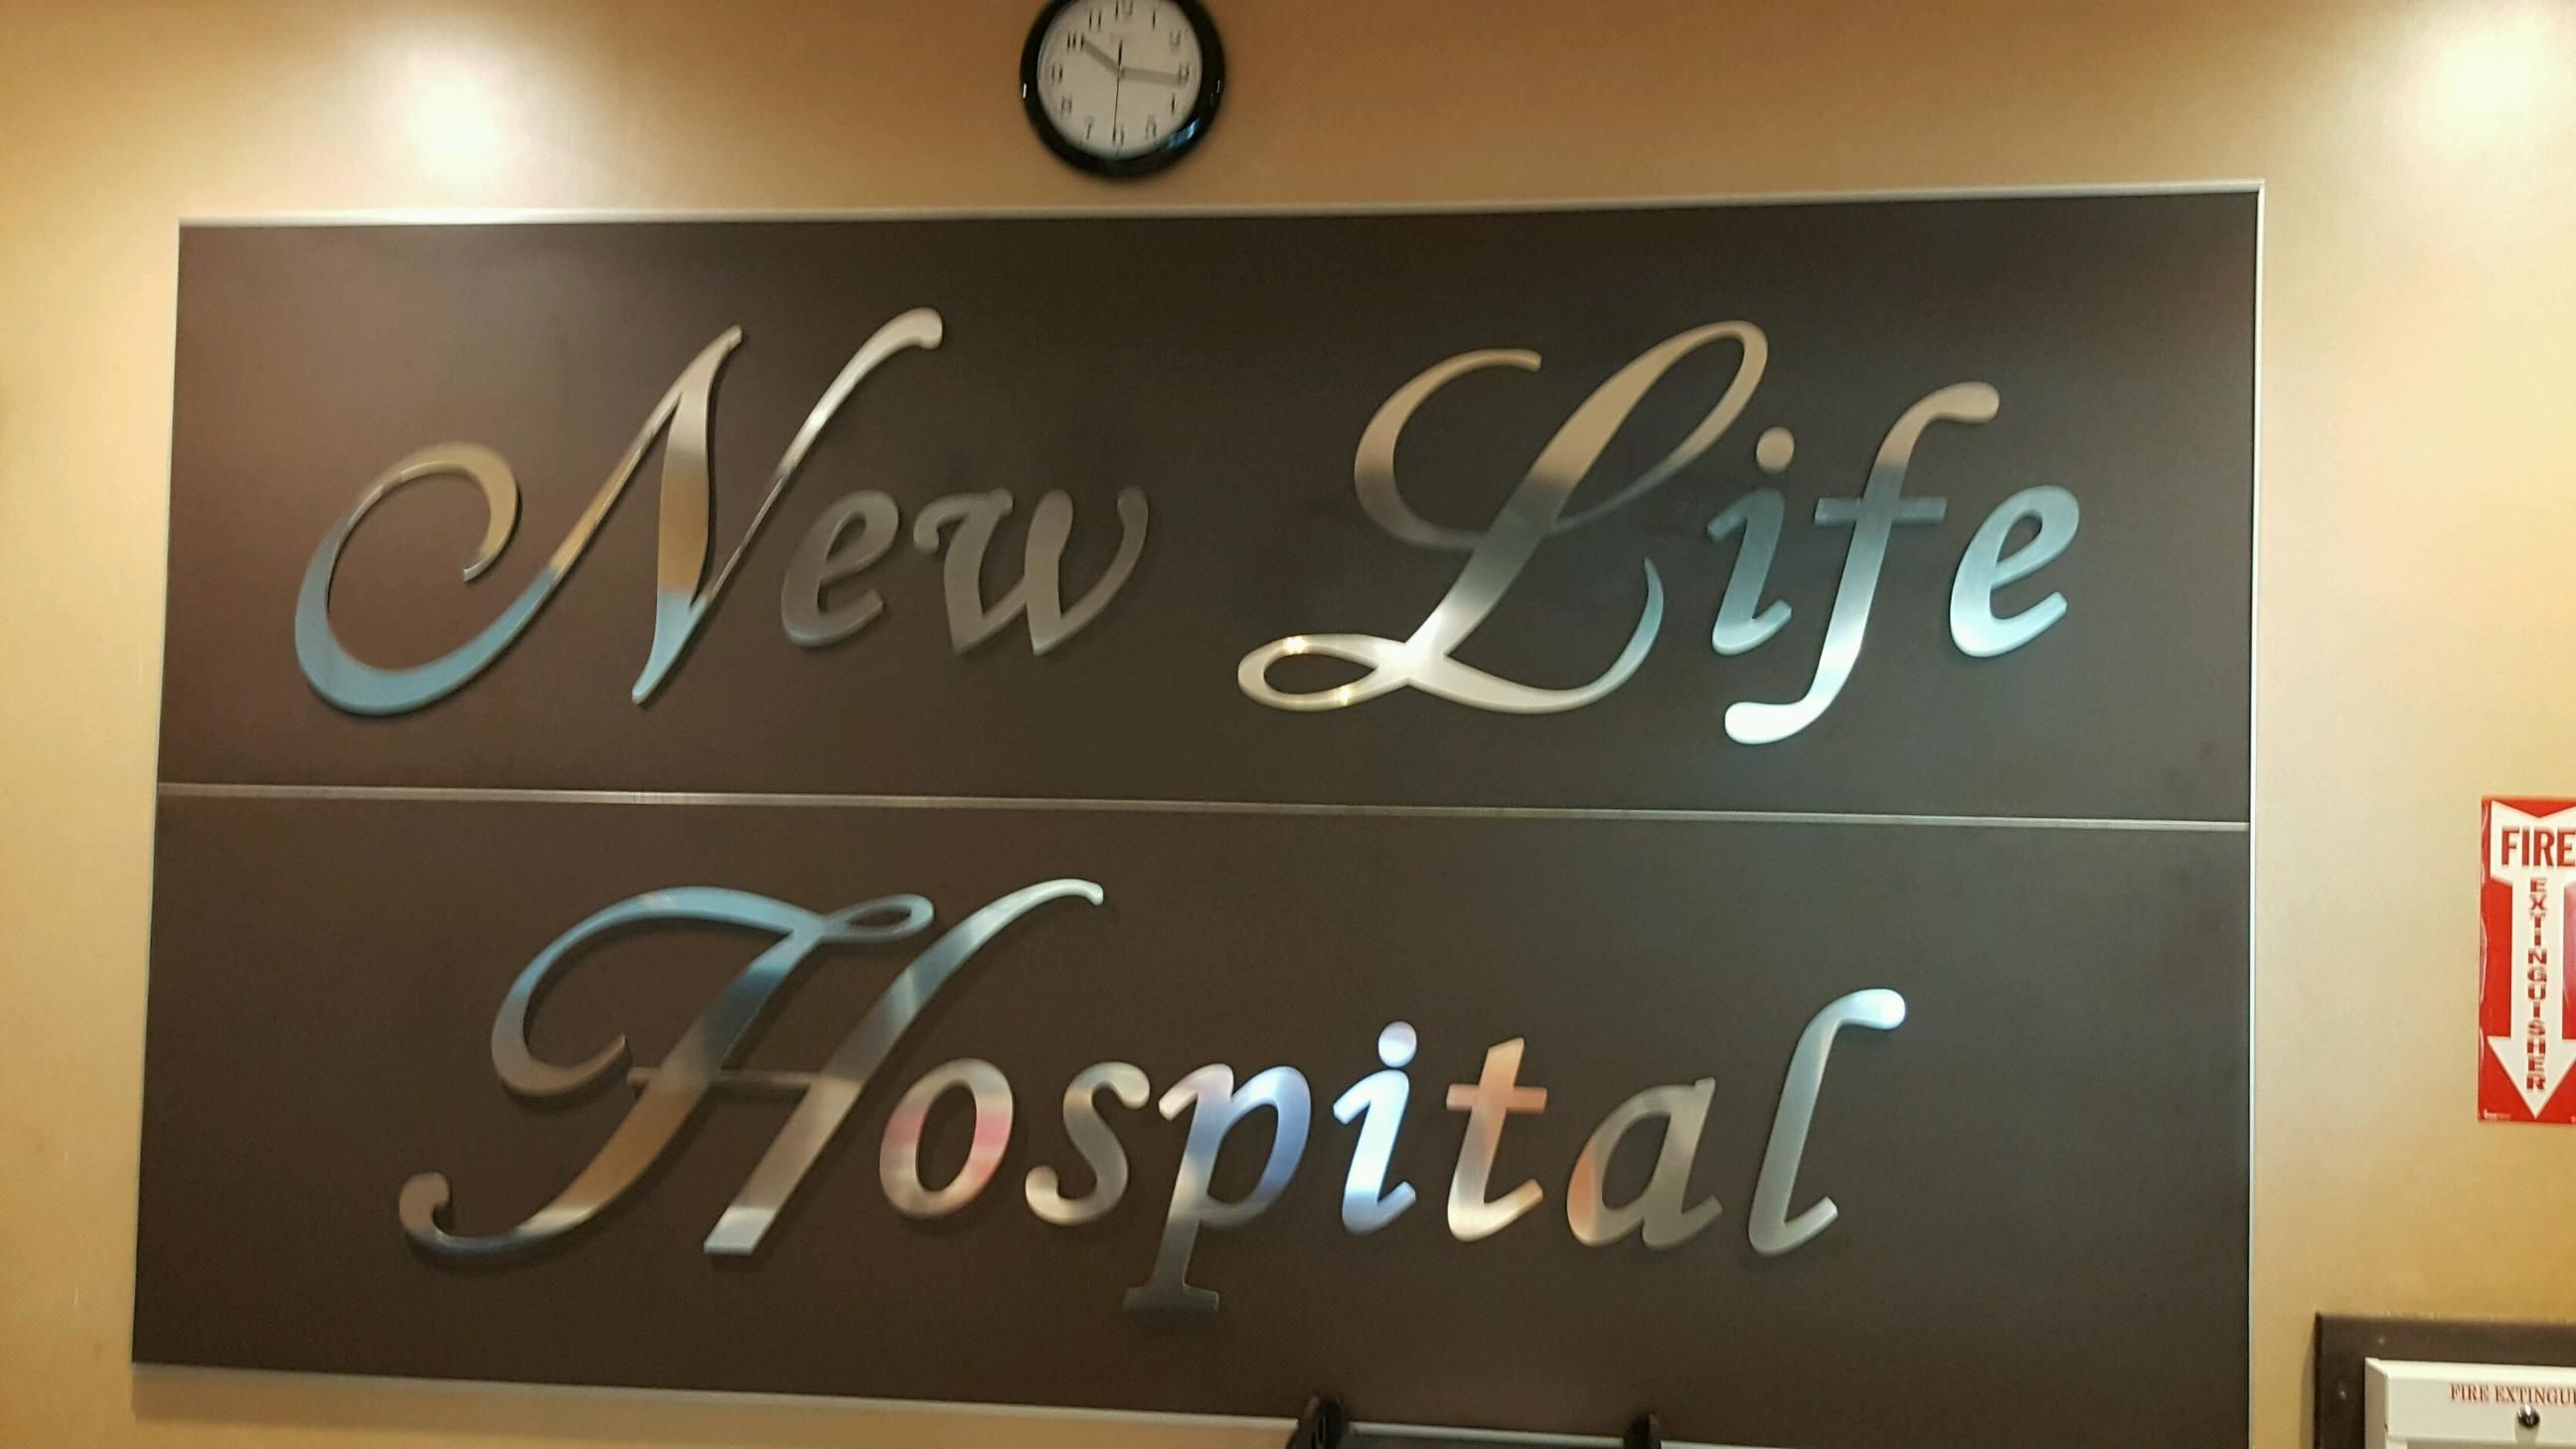 Houston Area Hospital Logo in Reception Area